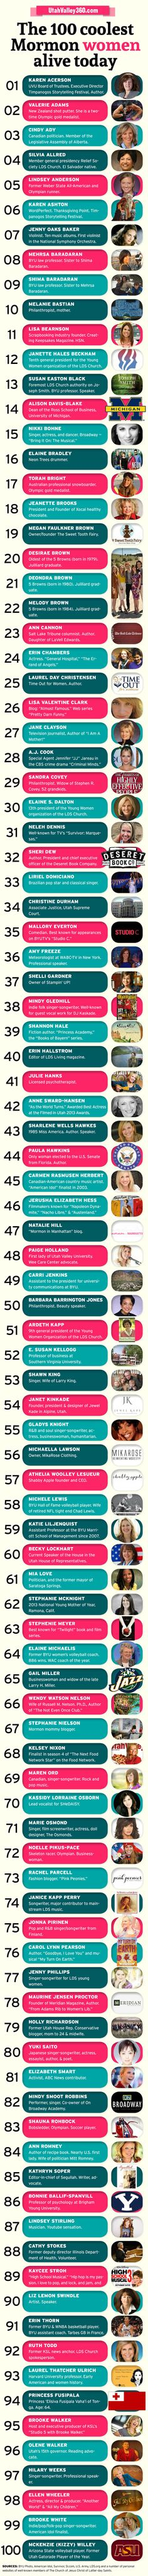 The 100 Coolest Mormon Women Alive Today - list is presented in alphabetical order by last name (not rank)